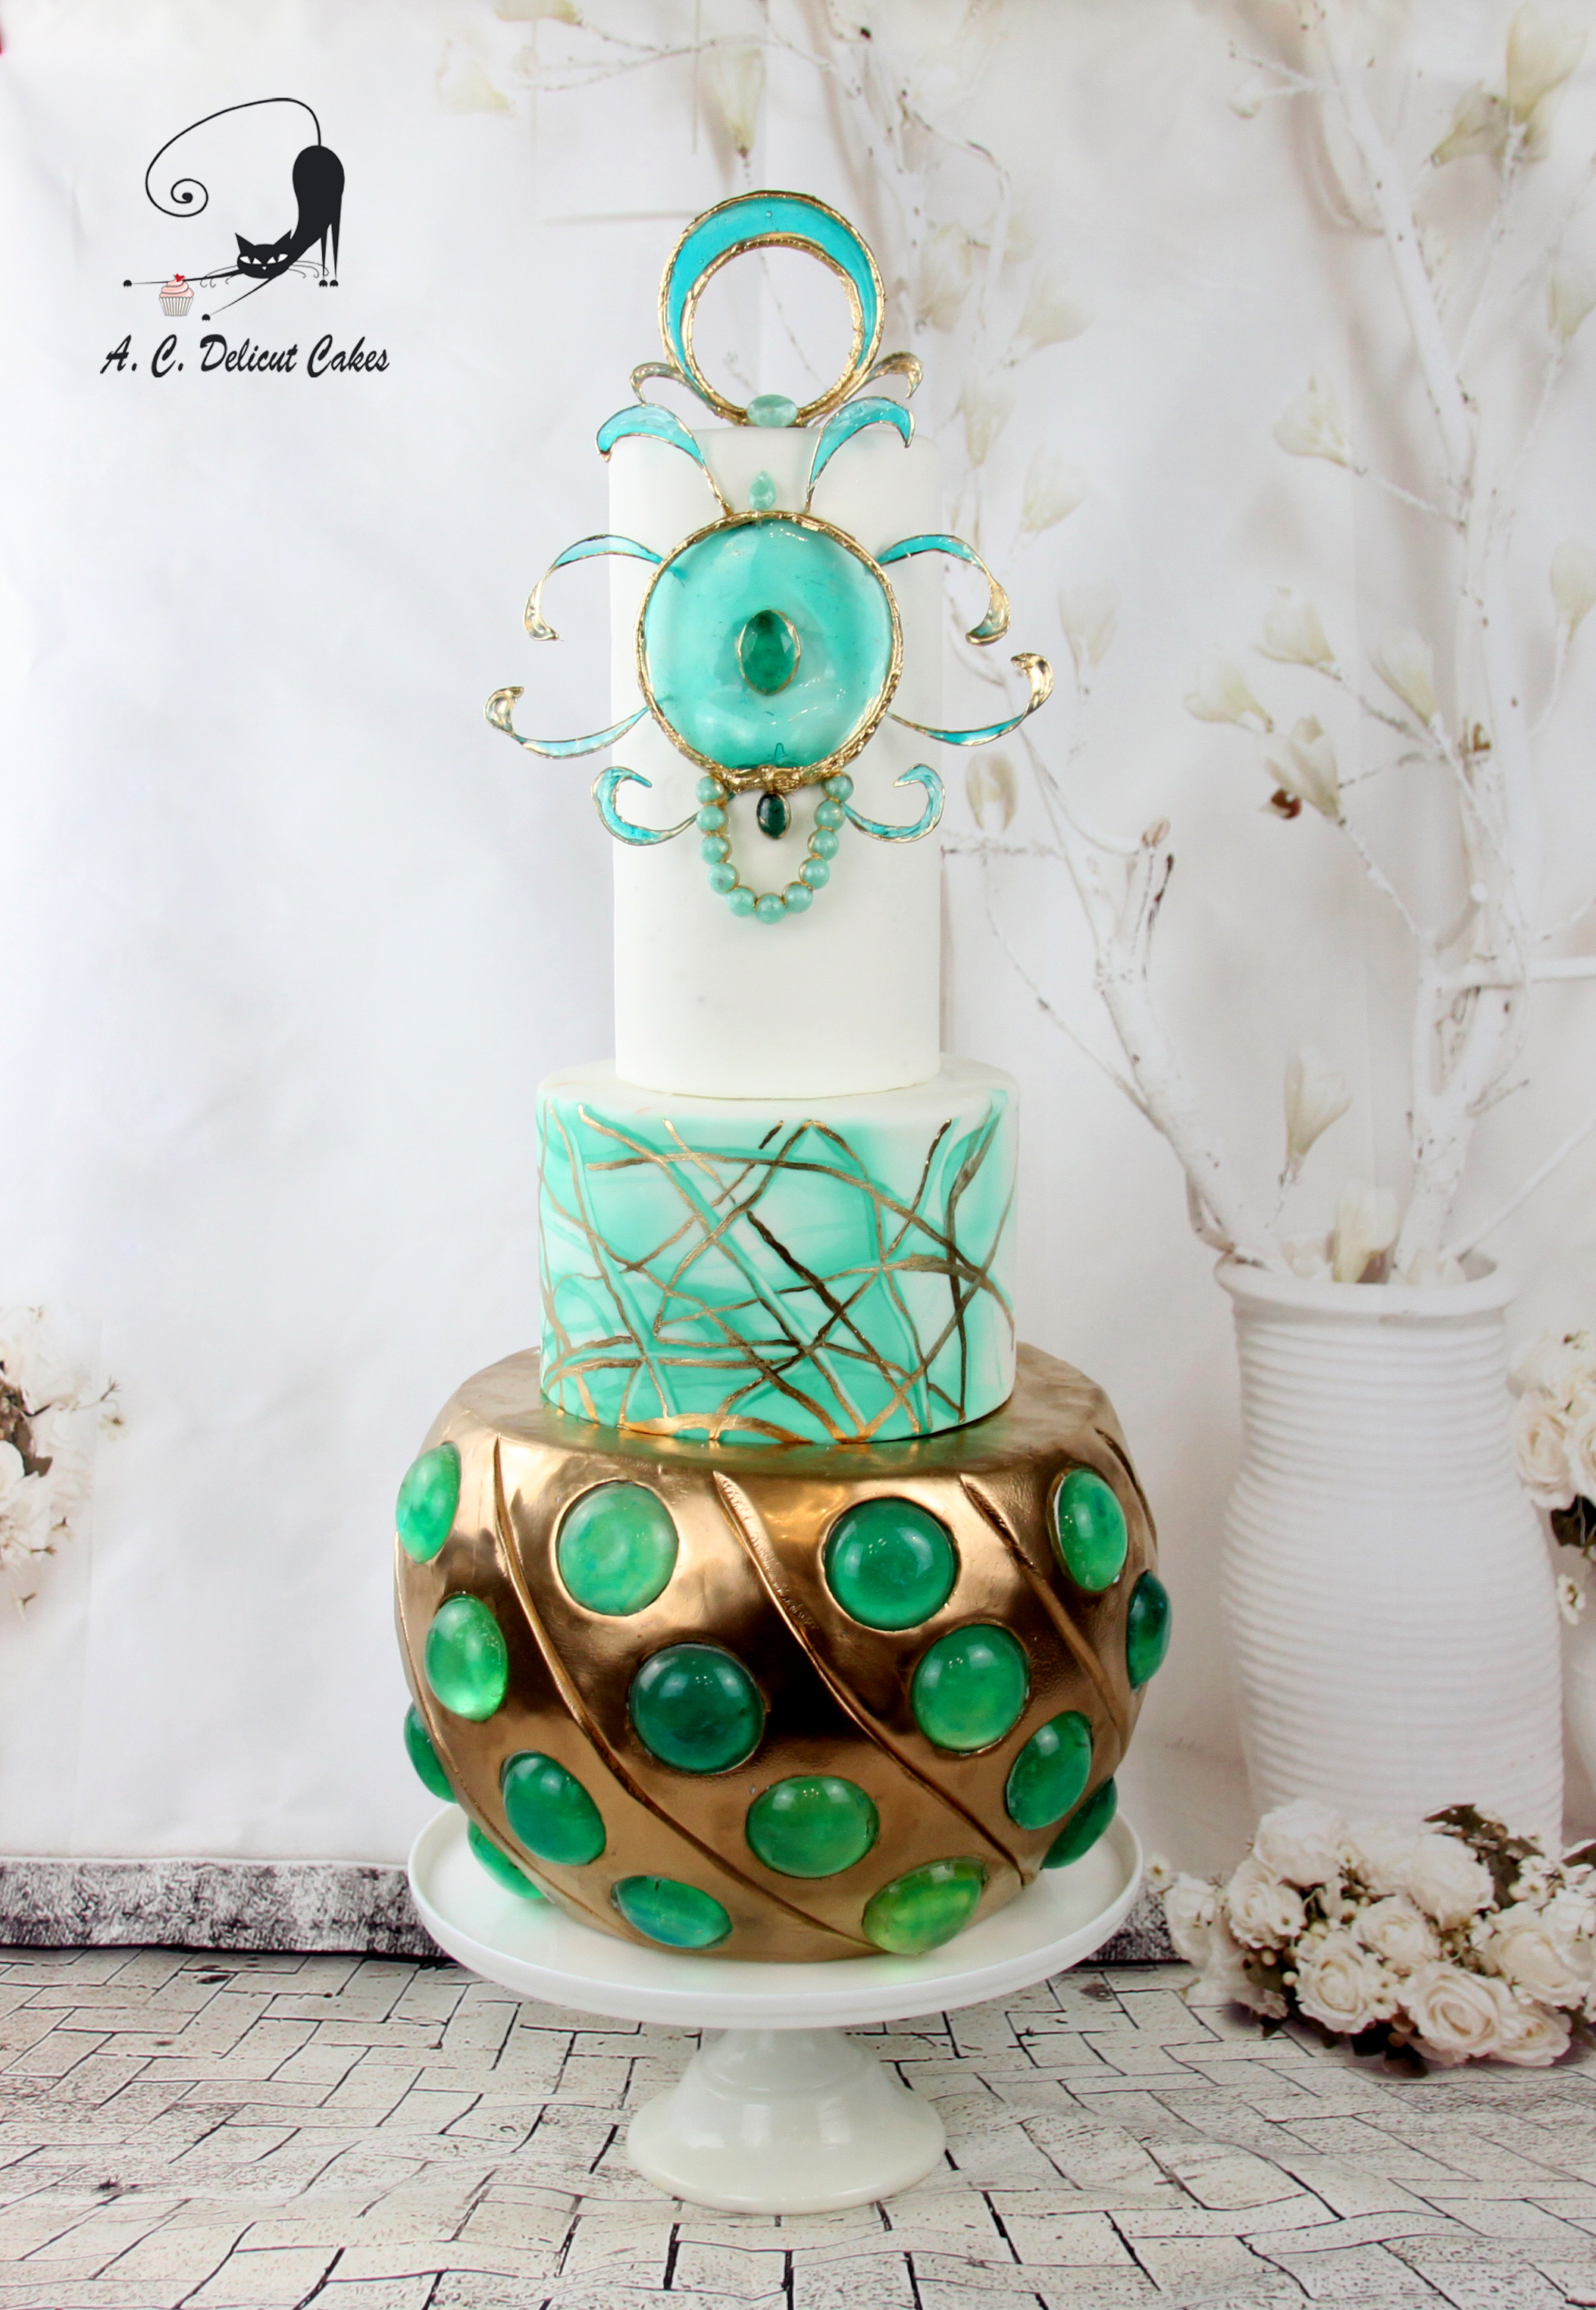 Aquamarine wedding cake